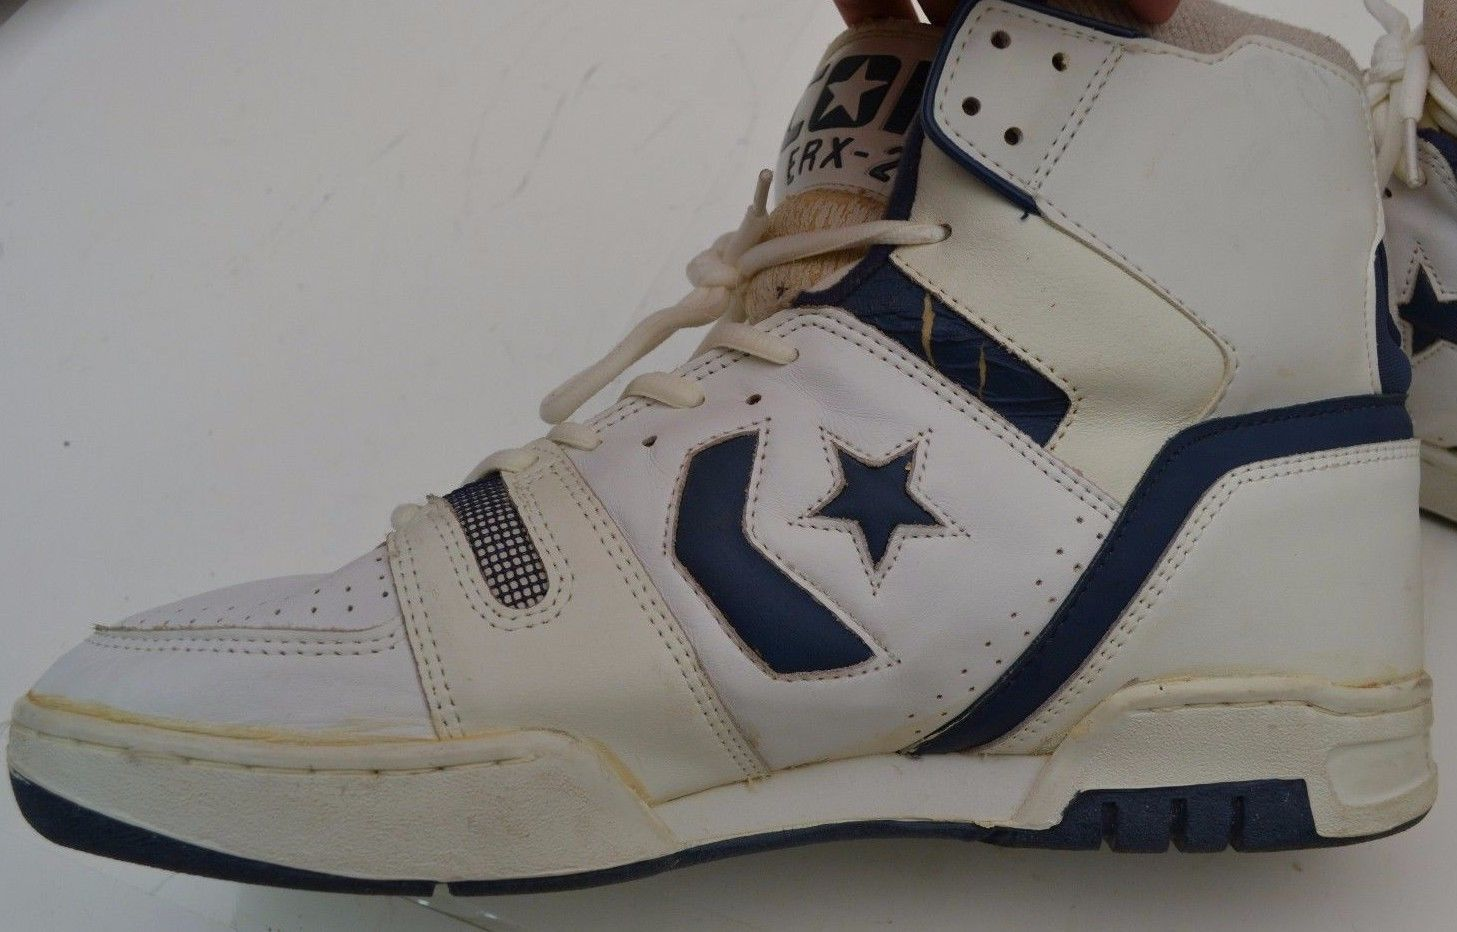 new arrival 5596c d4065 ... Deadstock NOS  Vintage Converse Cons ERX 200 Mens Size 13 5 US Hightops  Made in Korea Shoes NBA ...